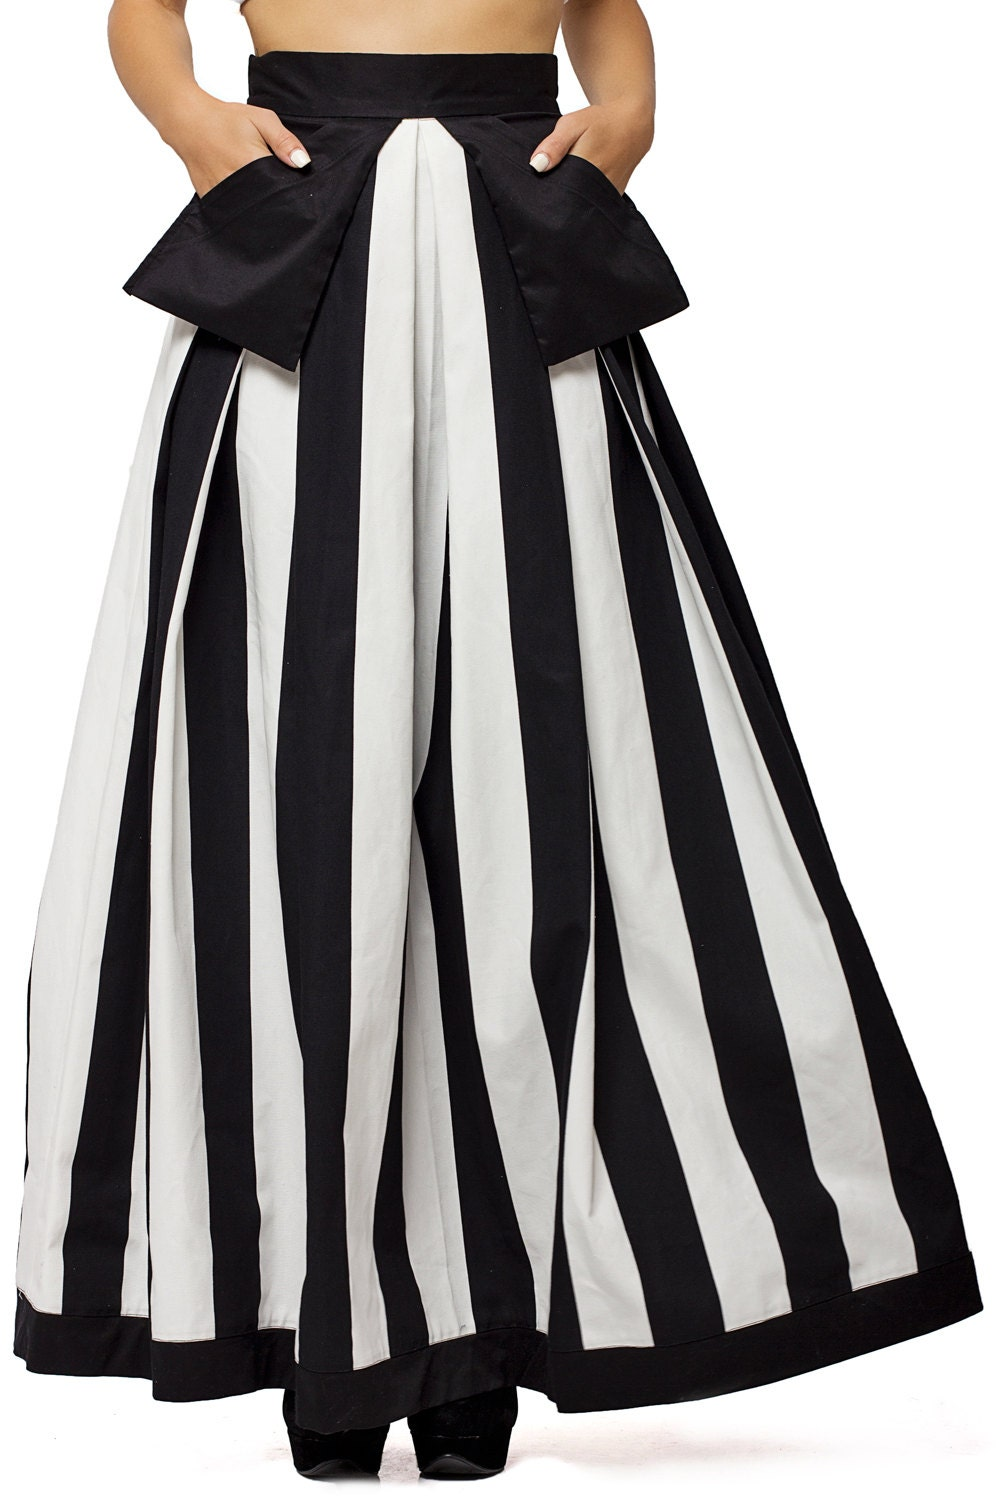 high waist black and white skirt maxi skirt pocket